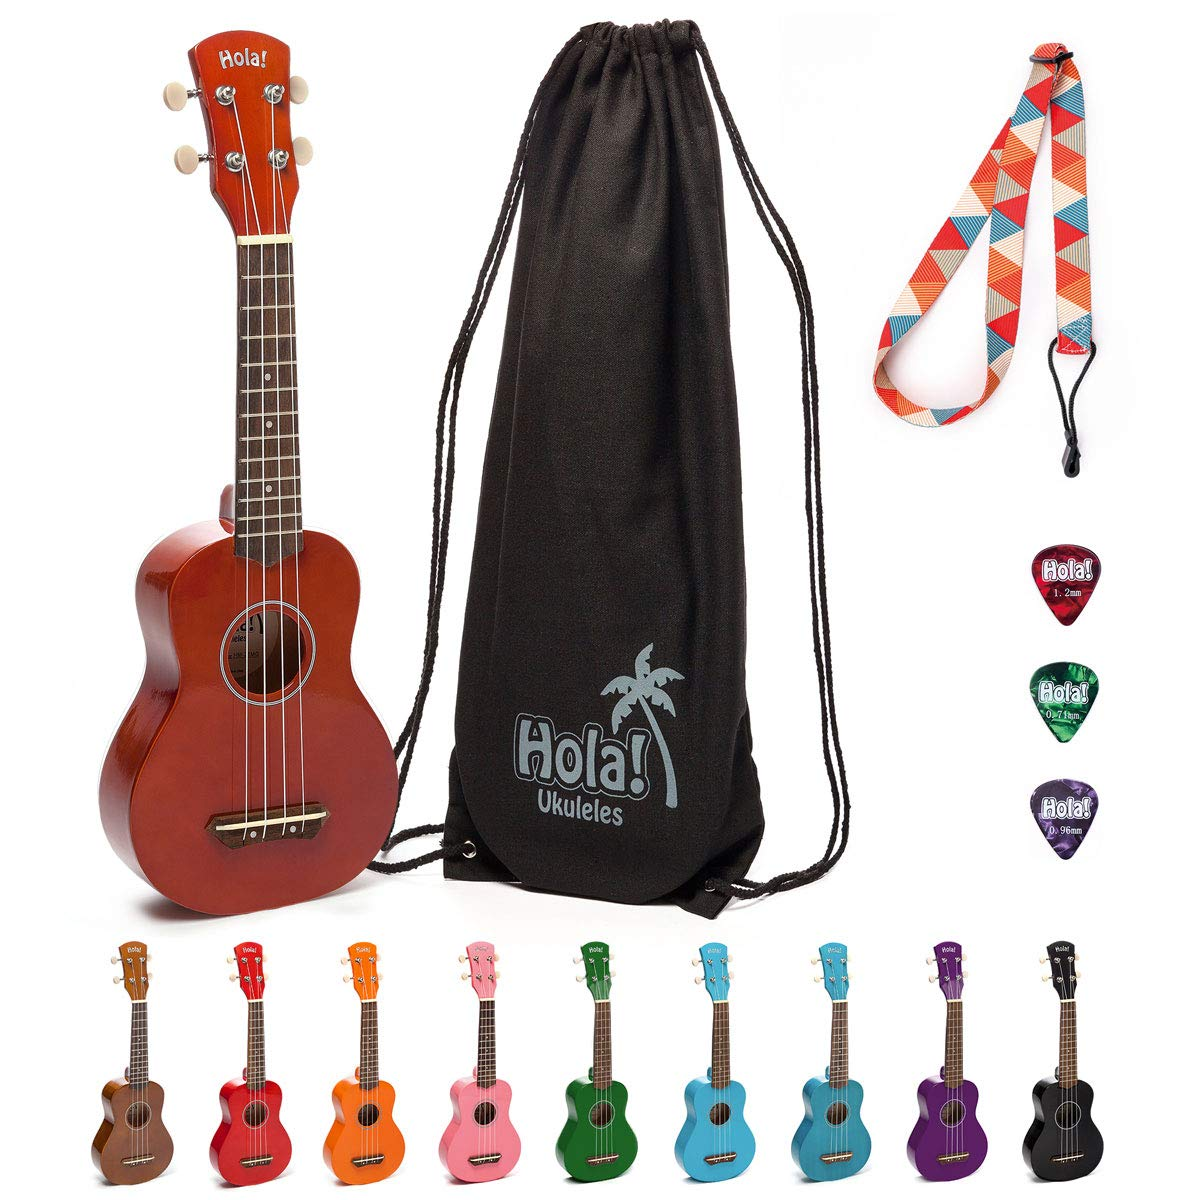 Hola! Music HM-21MG Soprano Ukulele Bundle with Canvas Tote Bag, Strap and Picks, Color Series - Mahogany by Hola! Music (Image #1)